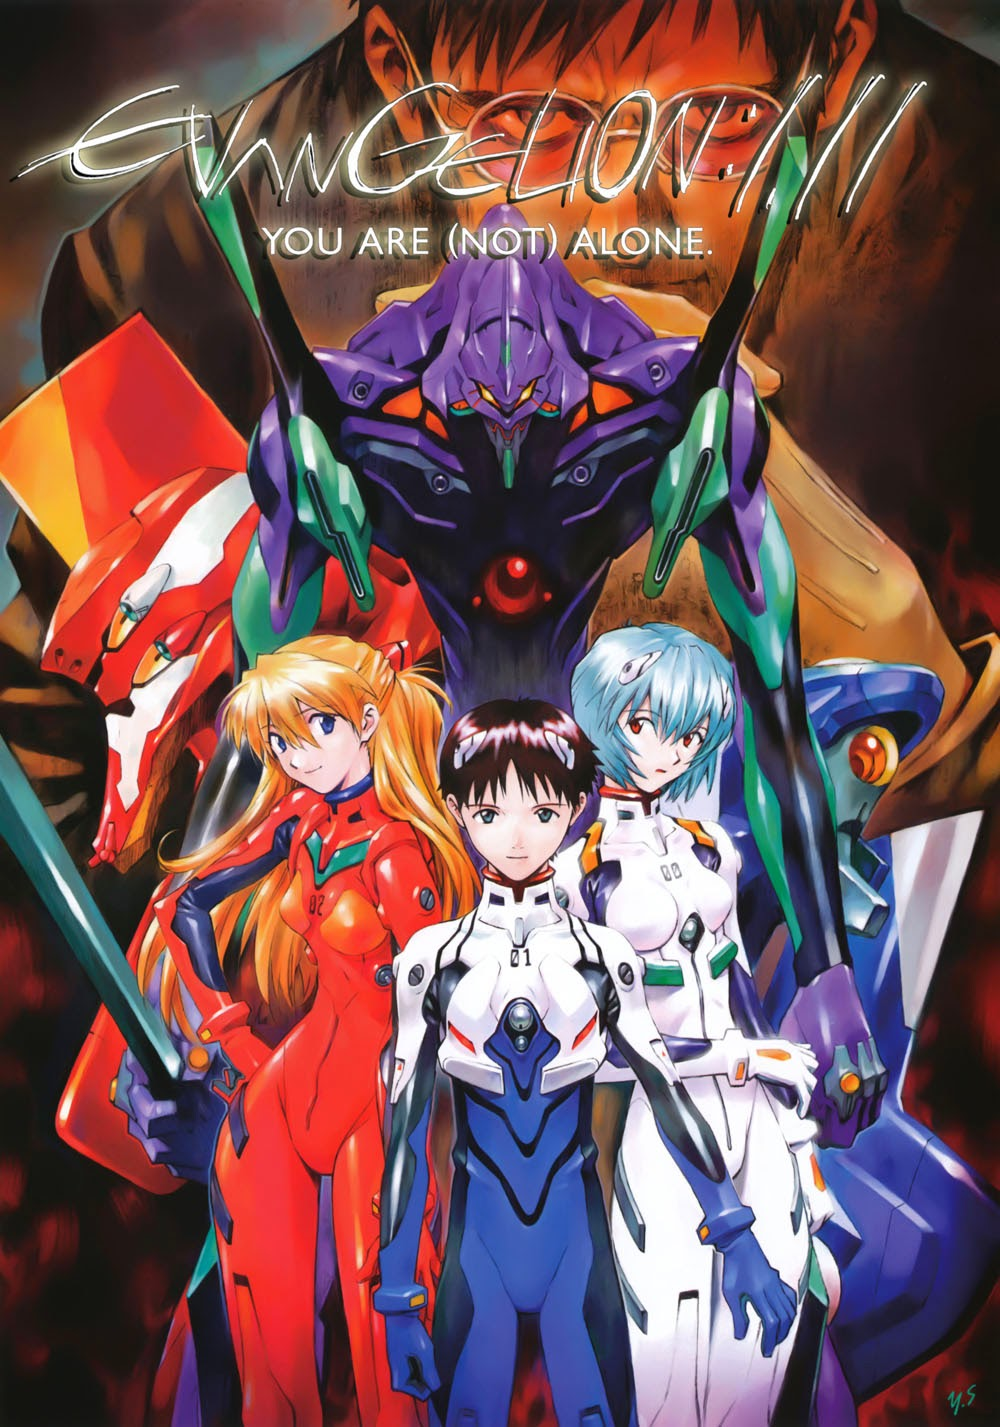 Evangelion Rebuil 1.0 You Are Not Alone recensione